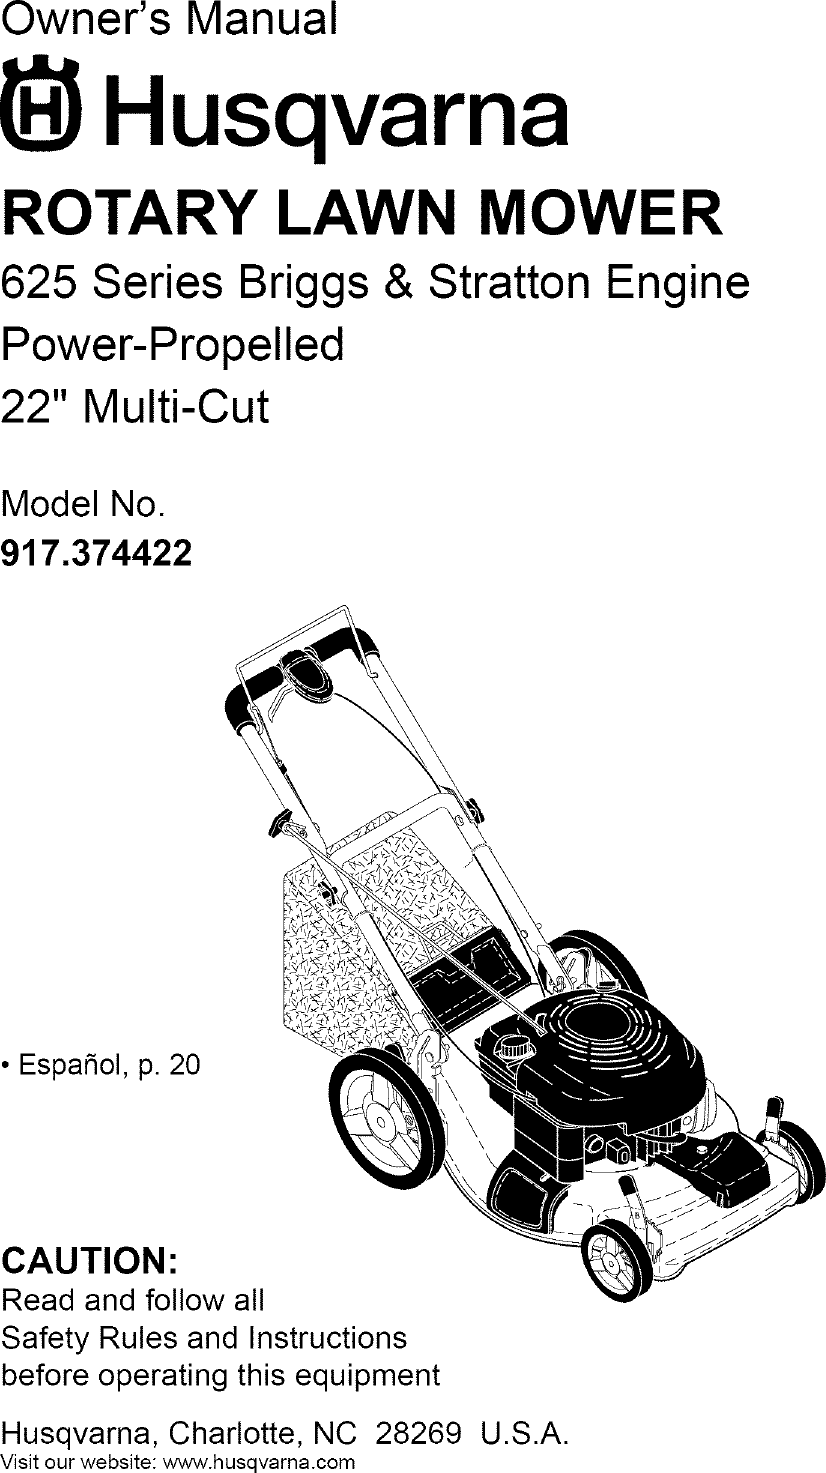 Husqvarna 917374422 User Manual LAWN MOWER Manuals And